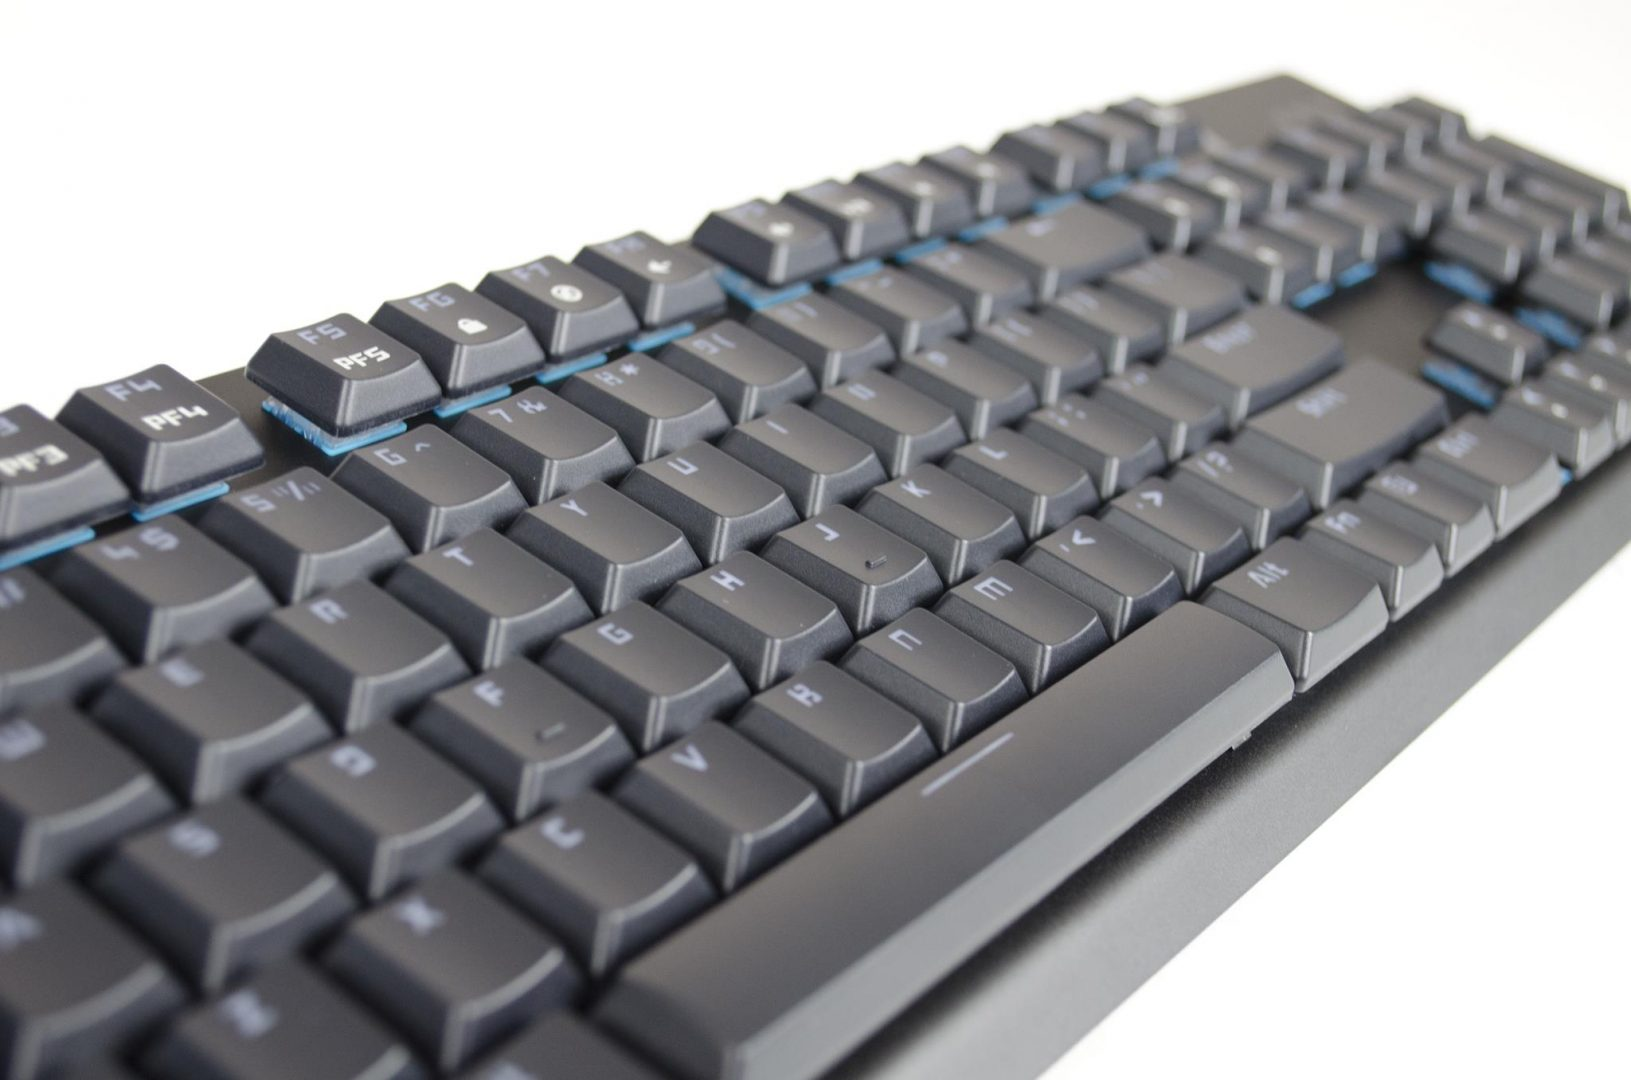 tesoro-gram-spectrum-rgm-gaming-mechanical-keyboard-review_11